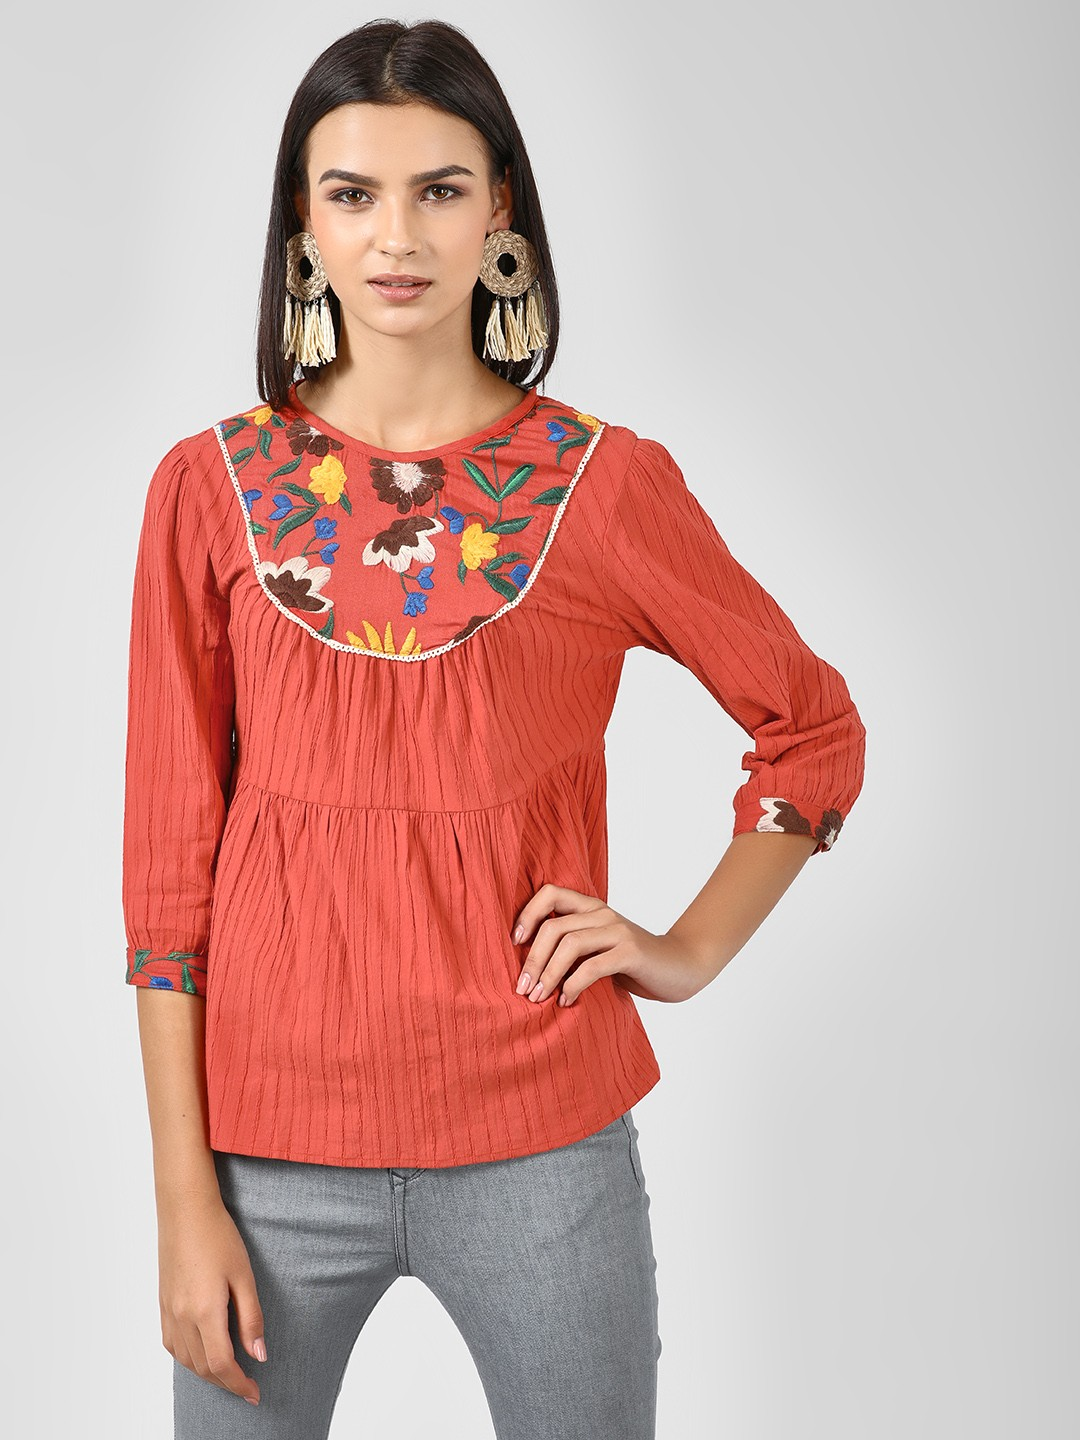 Rena Love Rust Texture Top With Embroidered Yoke 1